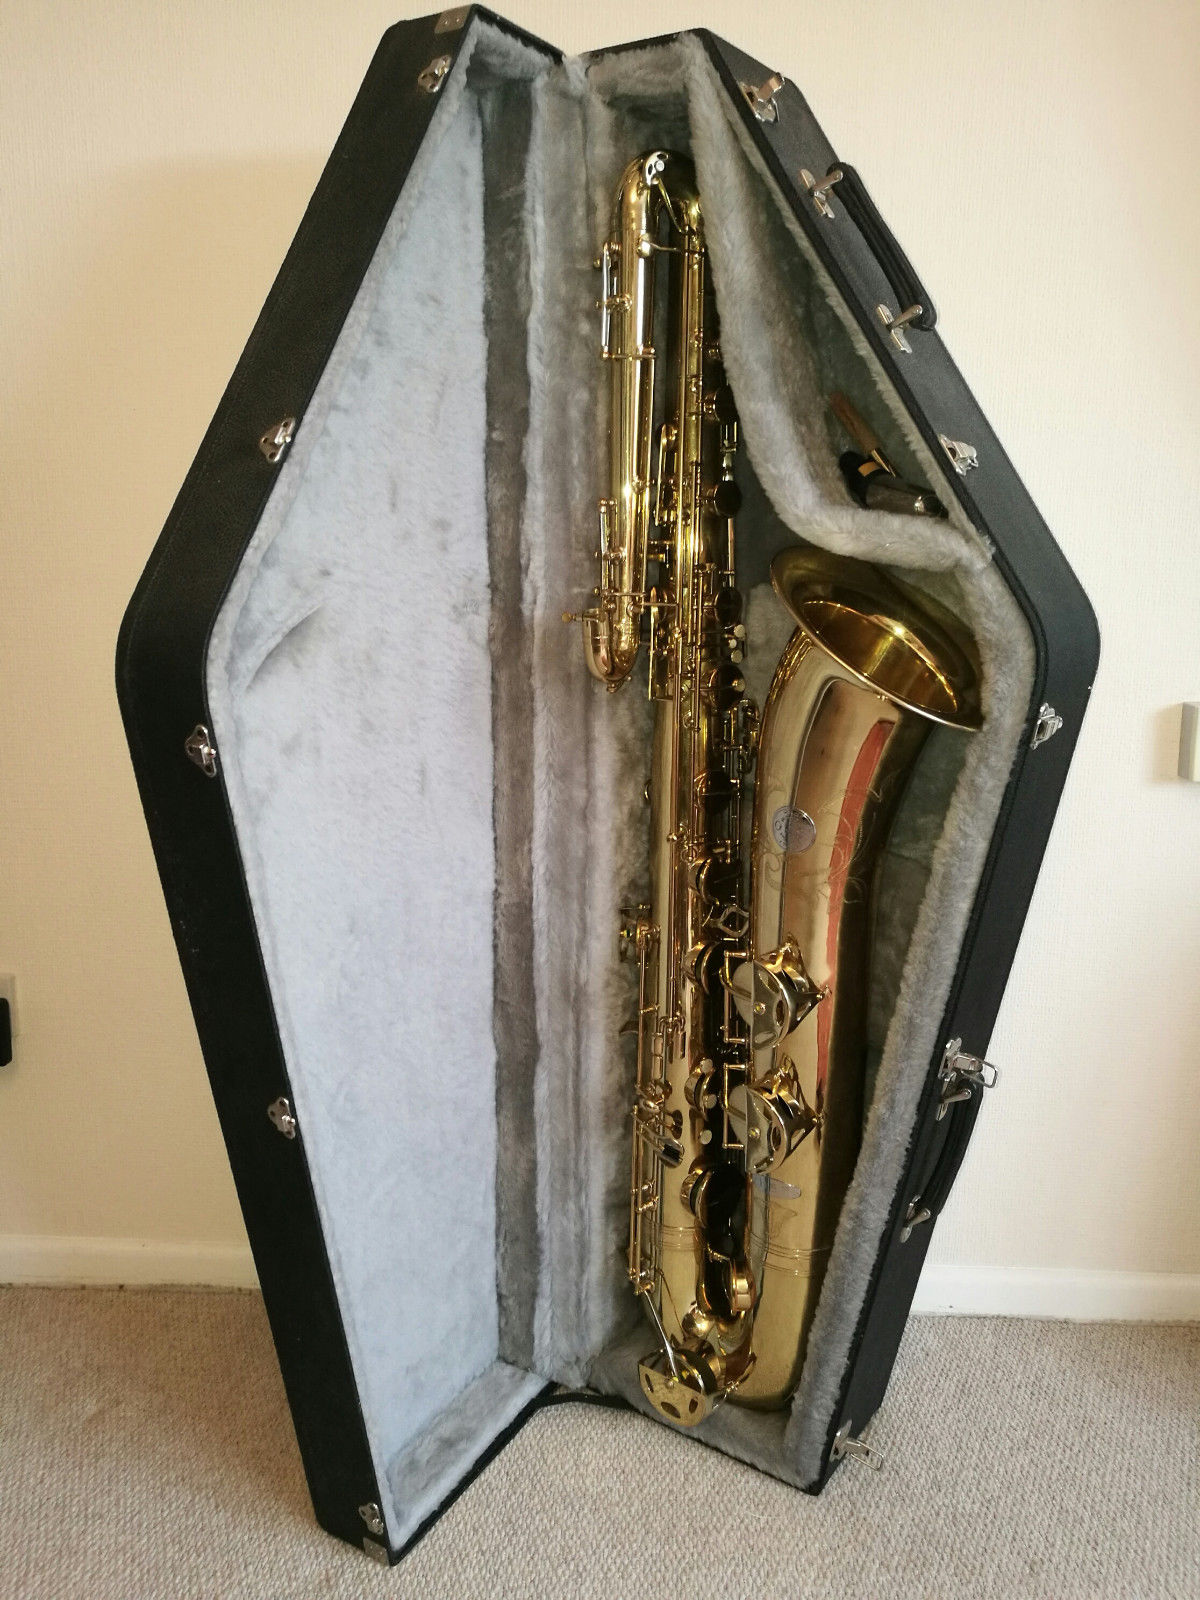 Compare/contrast 5 Orsi bass saxophones | The Bassic Sax Blog